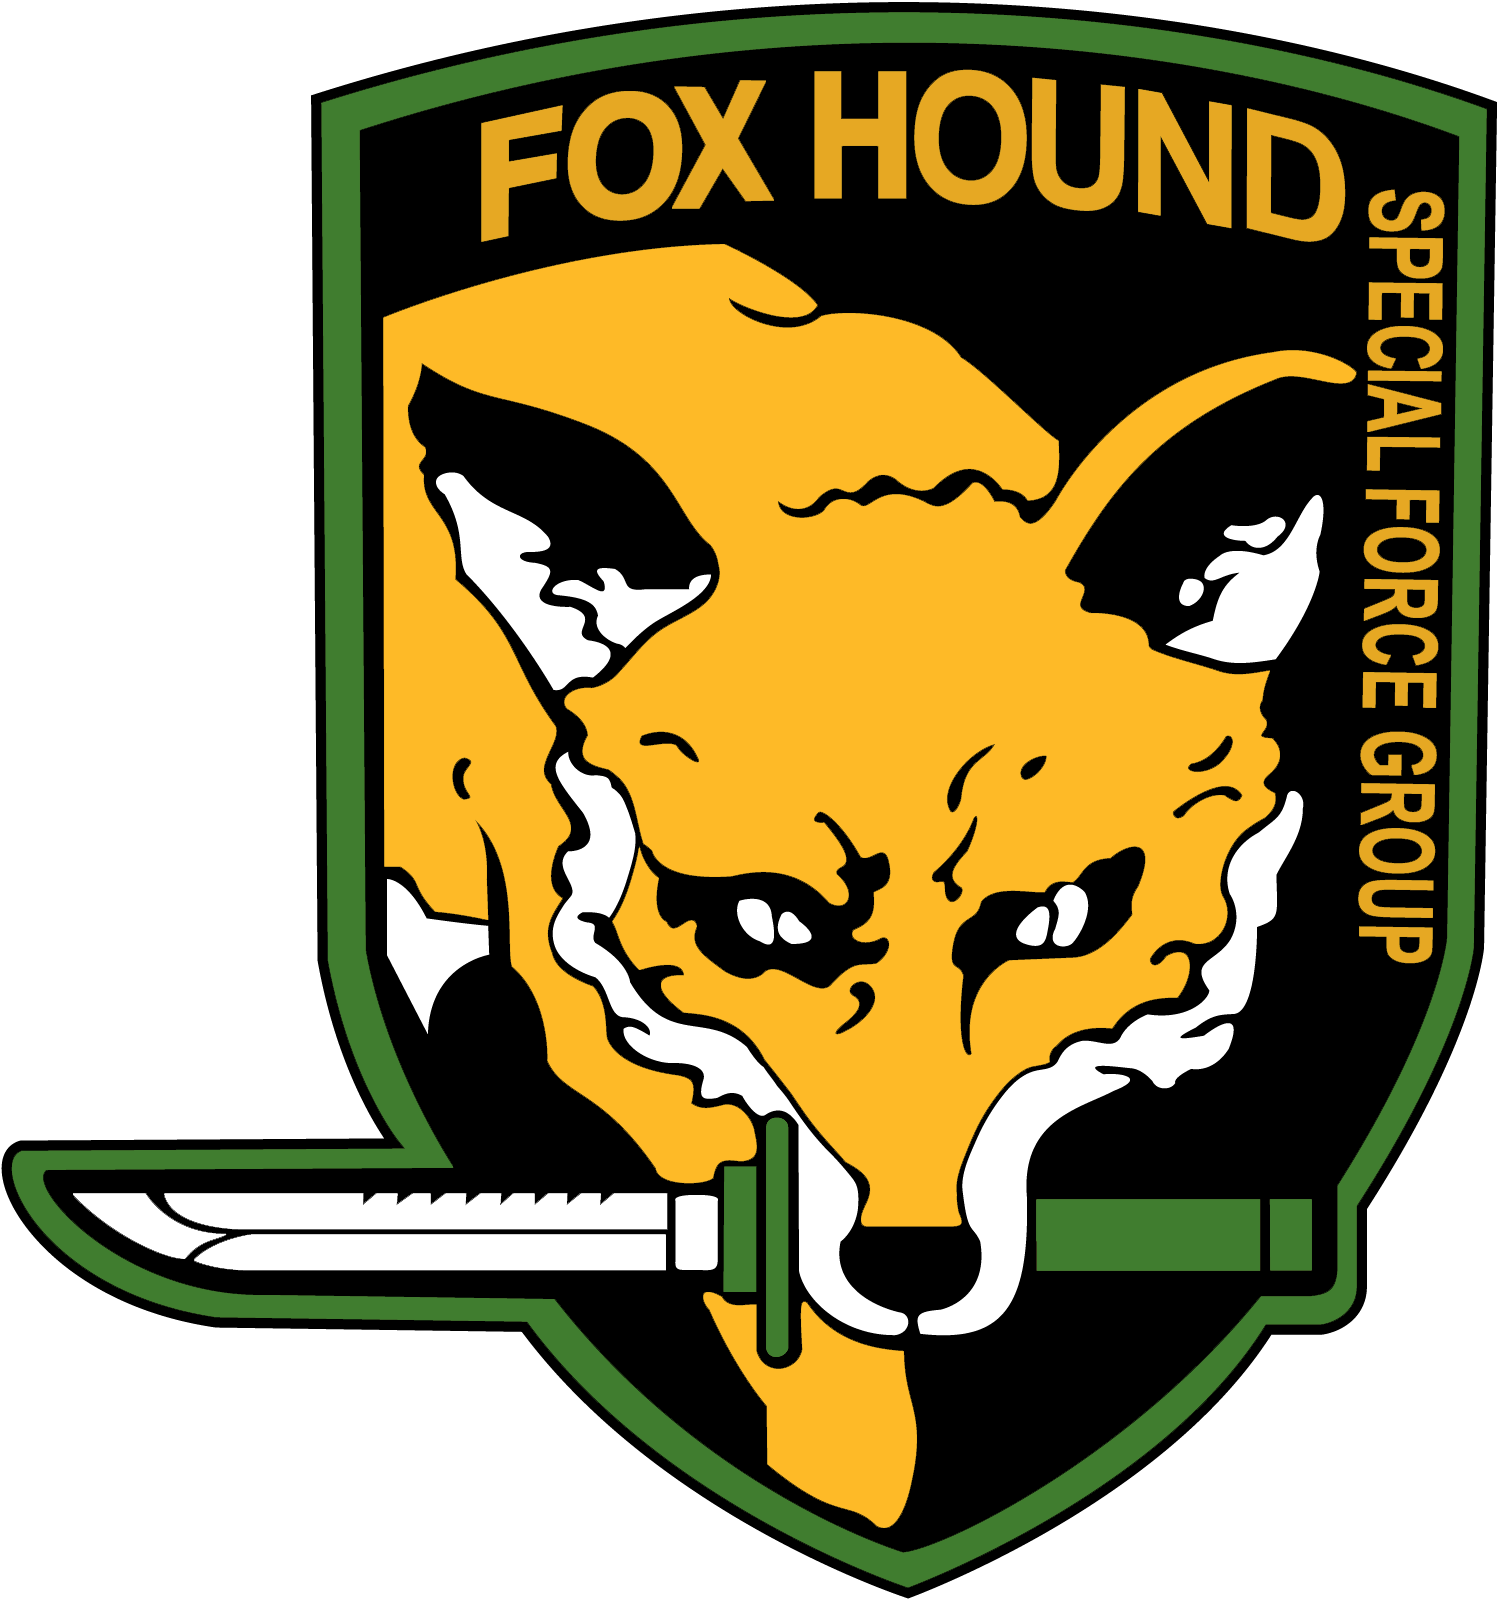 Foxhound Emblem From The Game Metal Gear Solid Metal Gear The Fox And The Hound Metal Gear Series